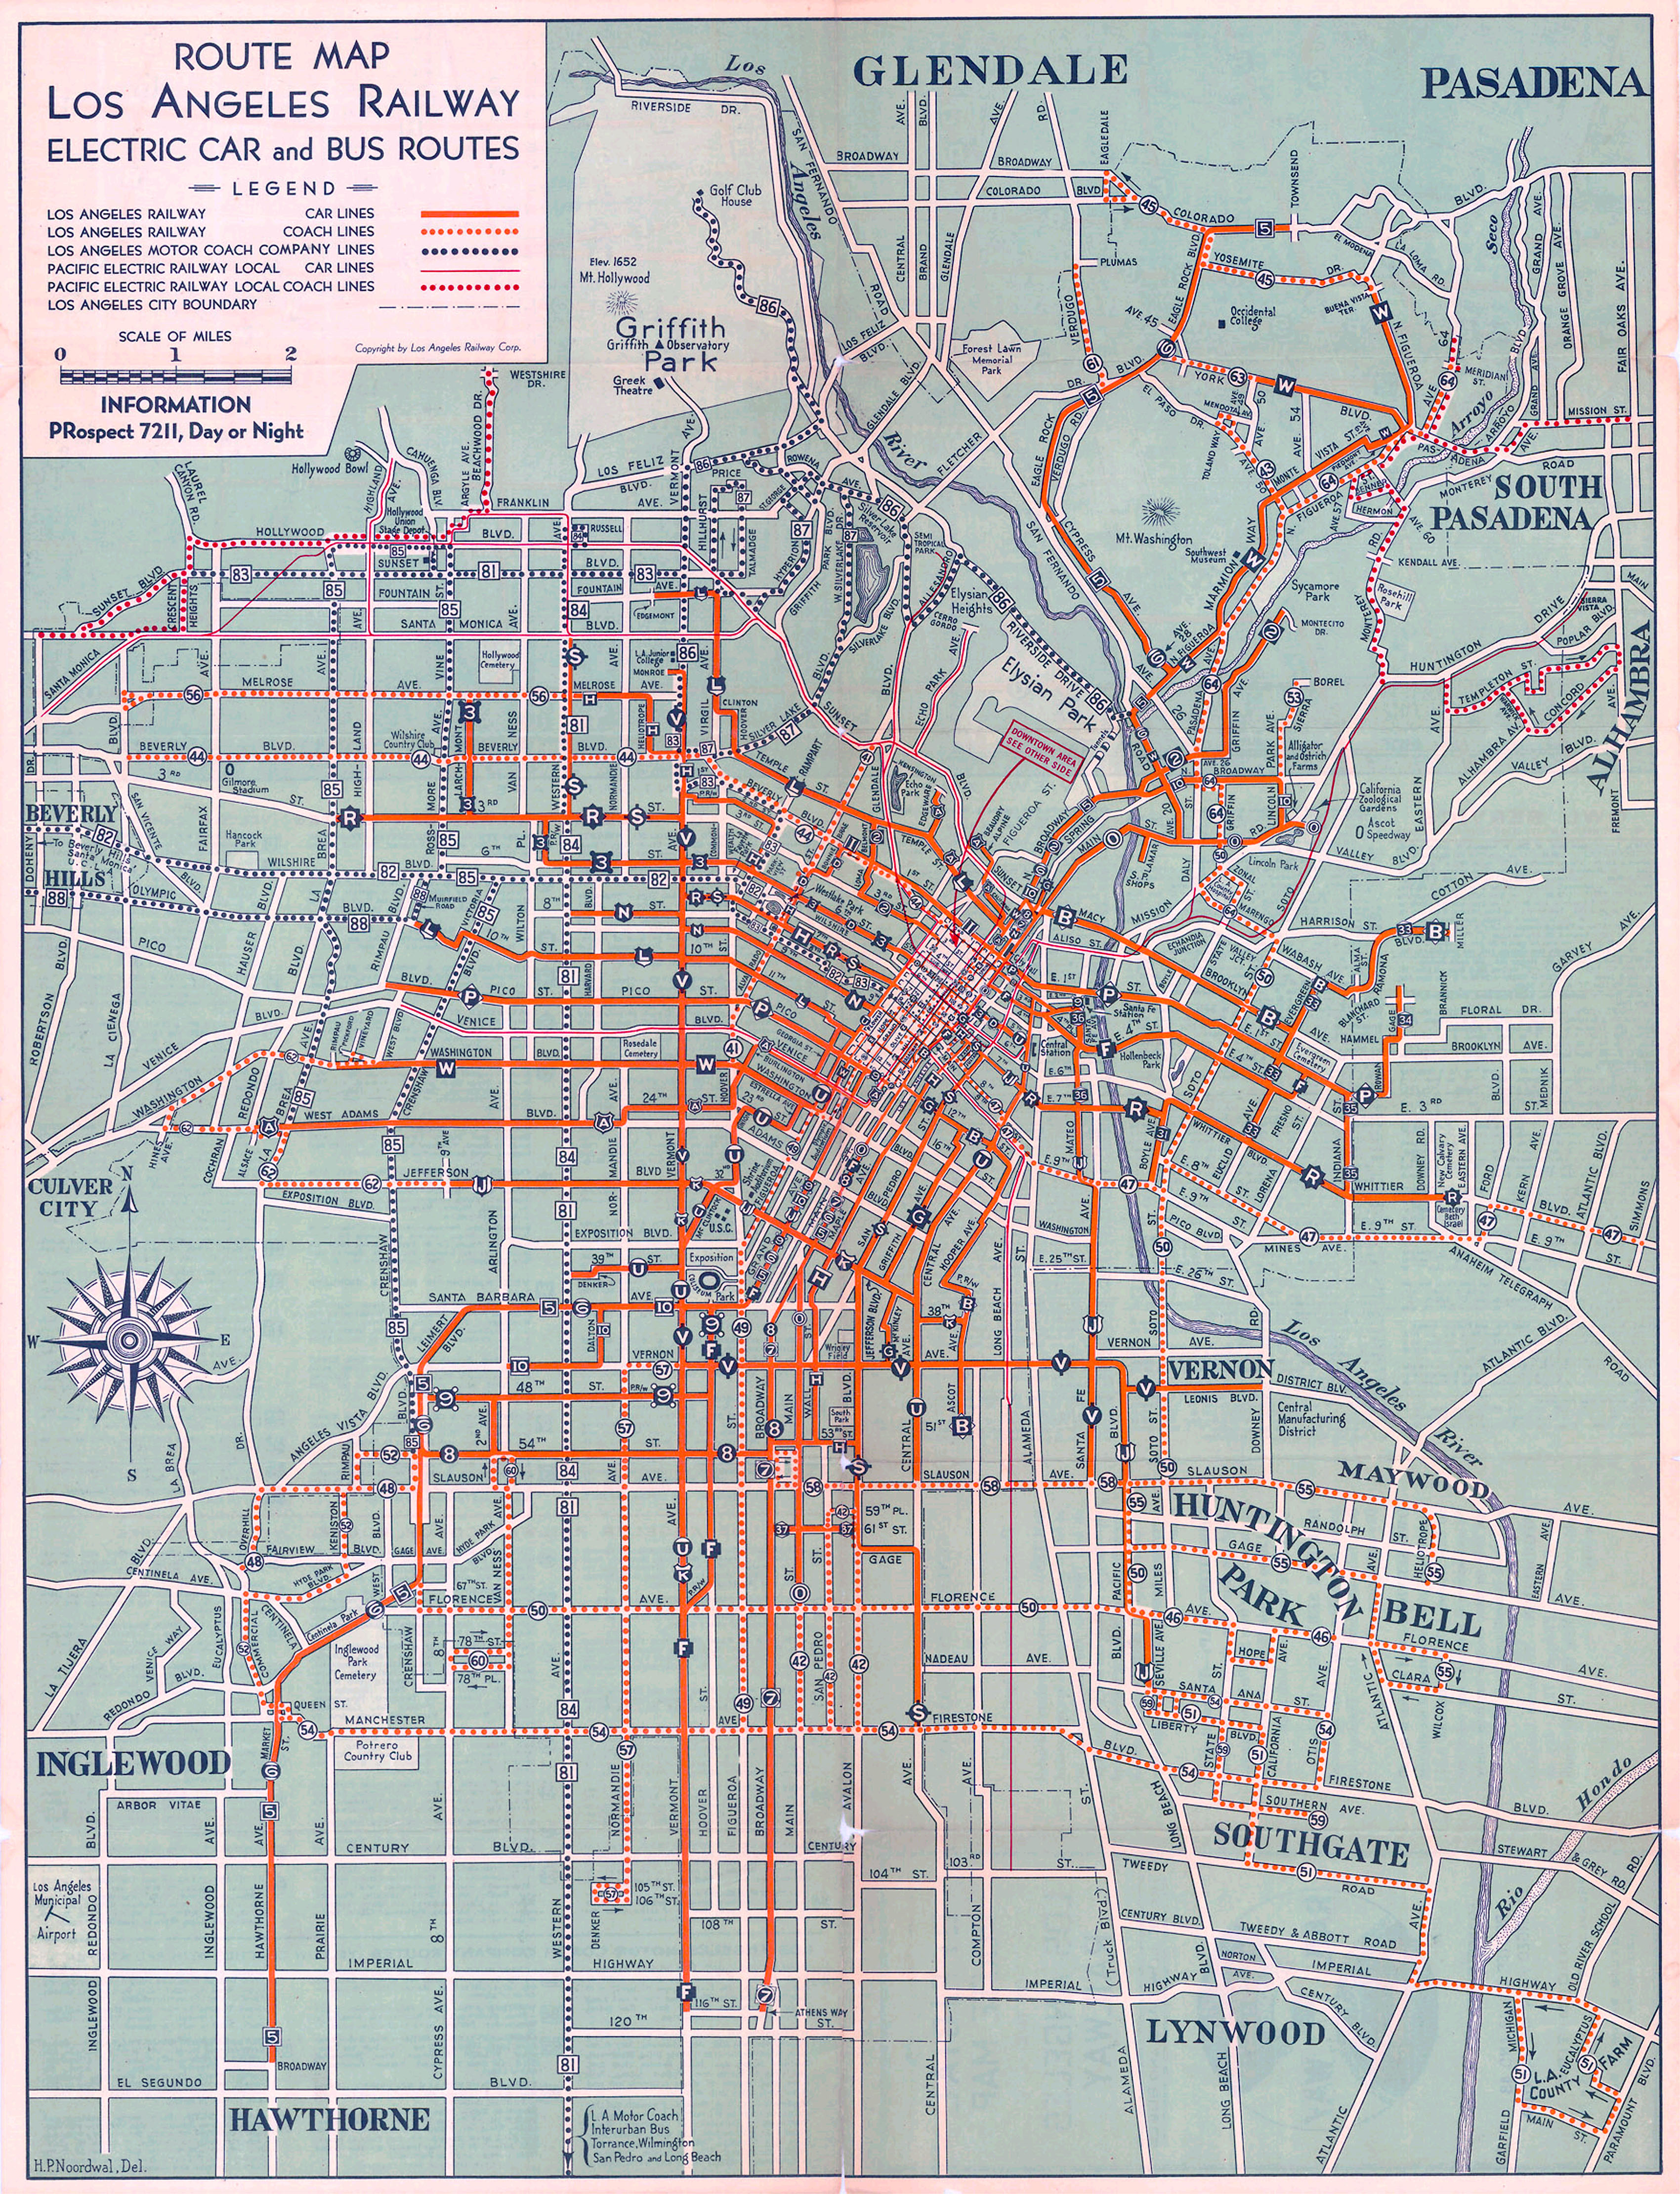 Electric Car And Bus Routes In LA - 1934 us highways map midwest